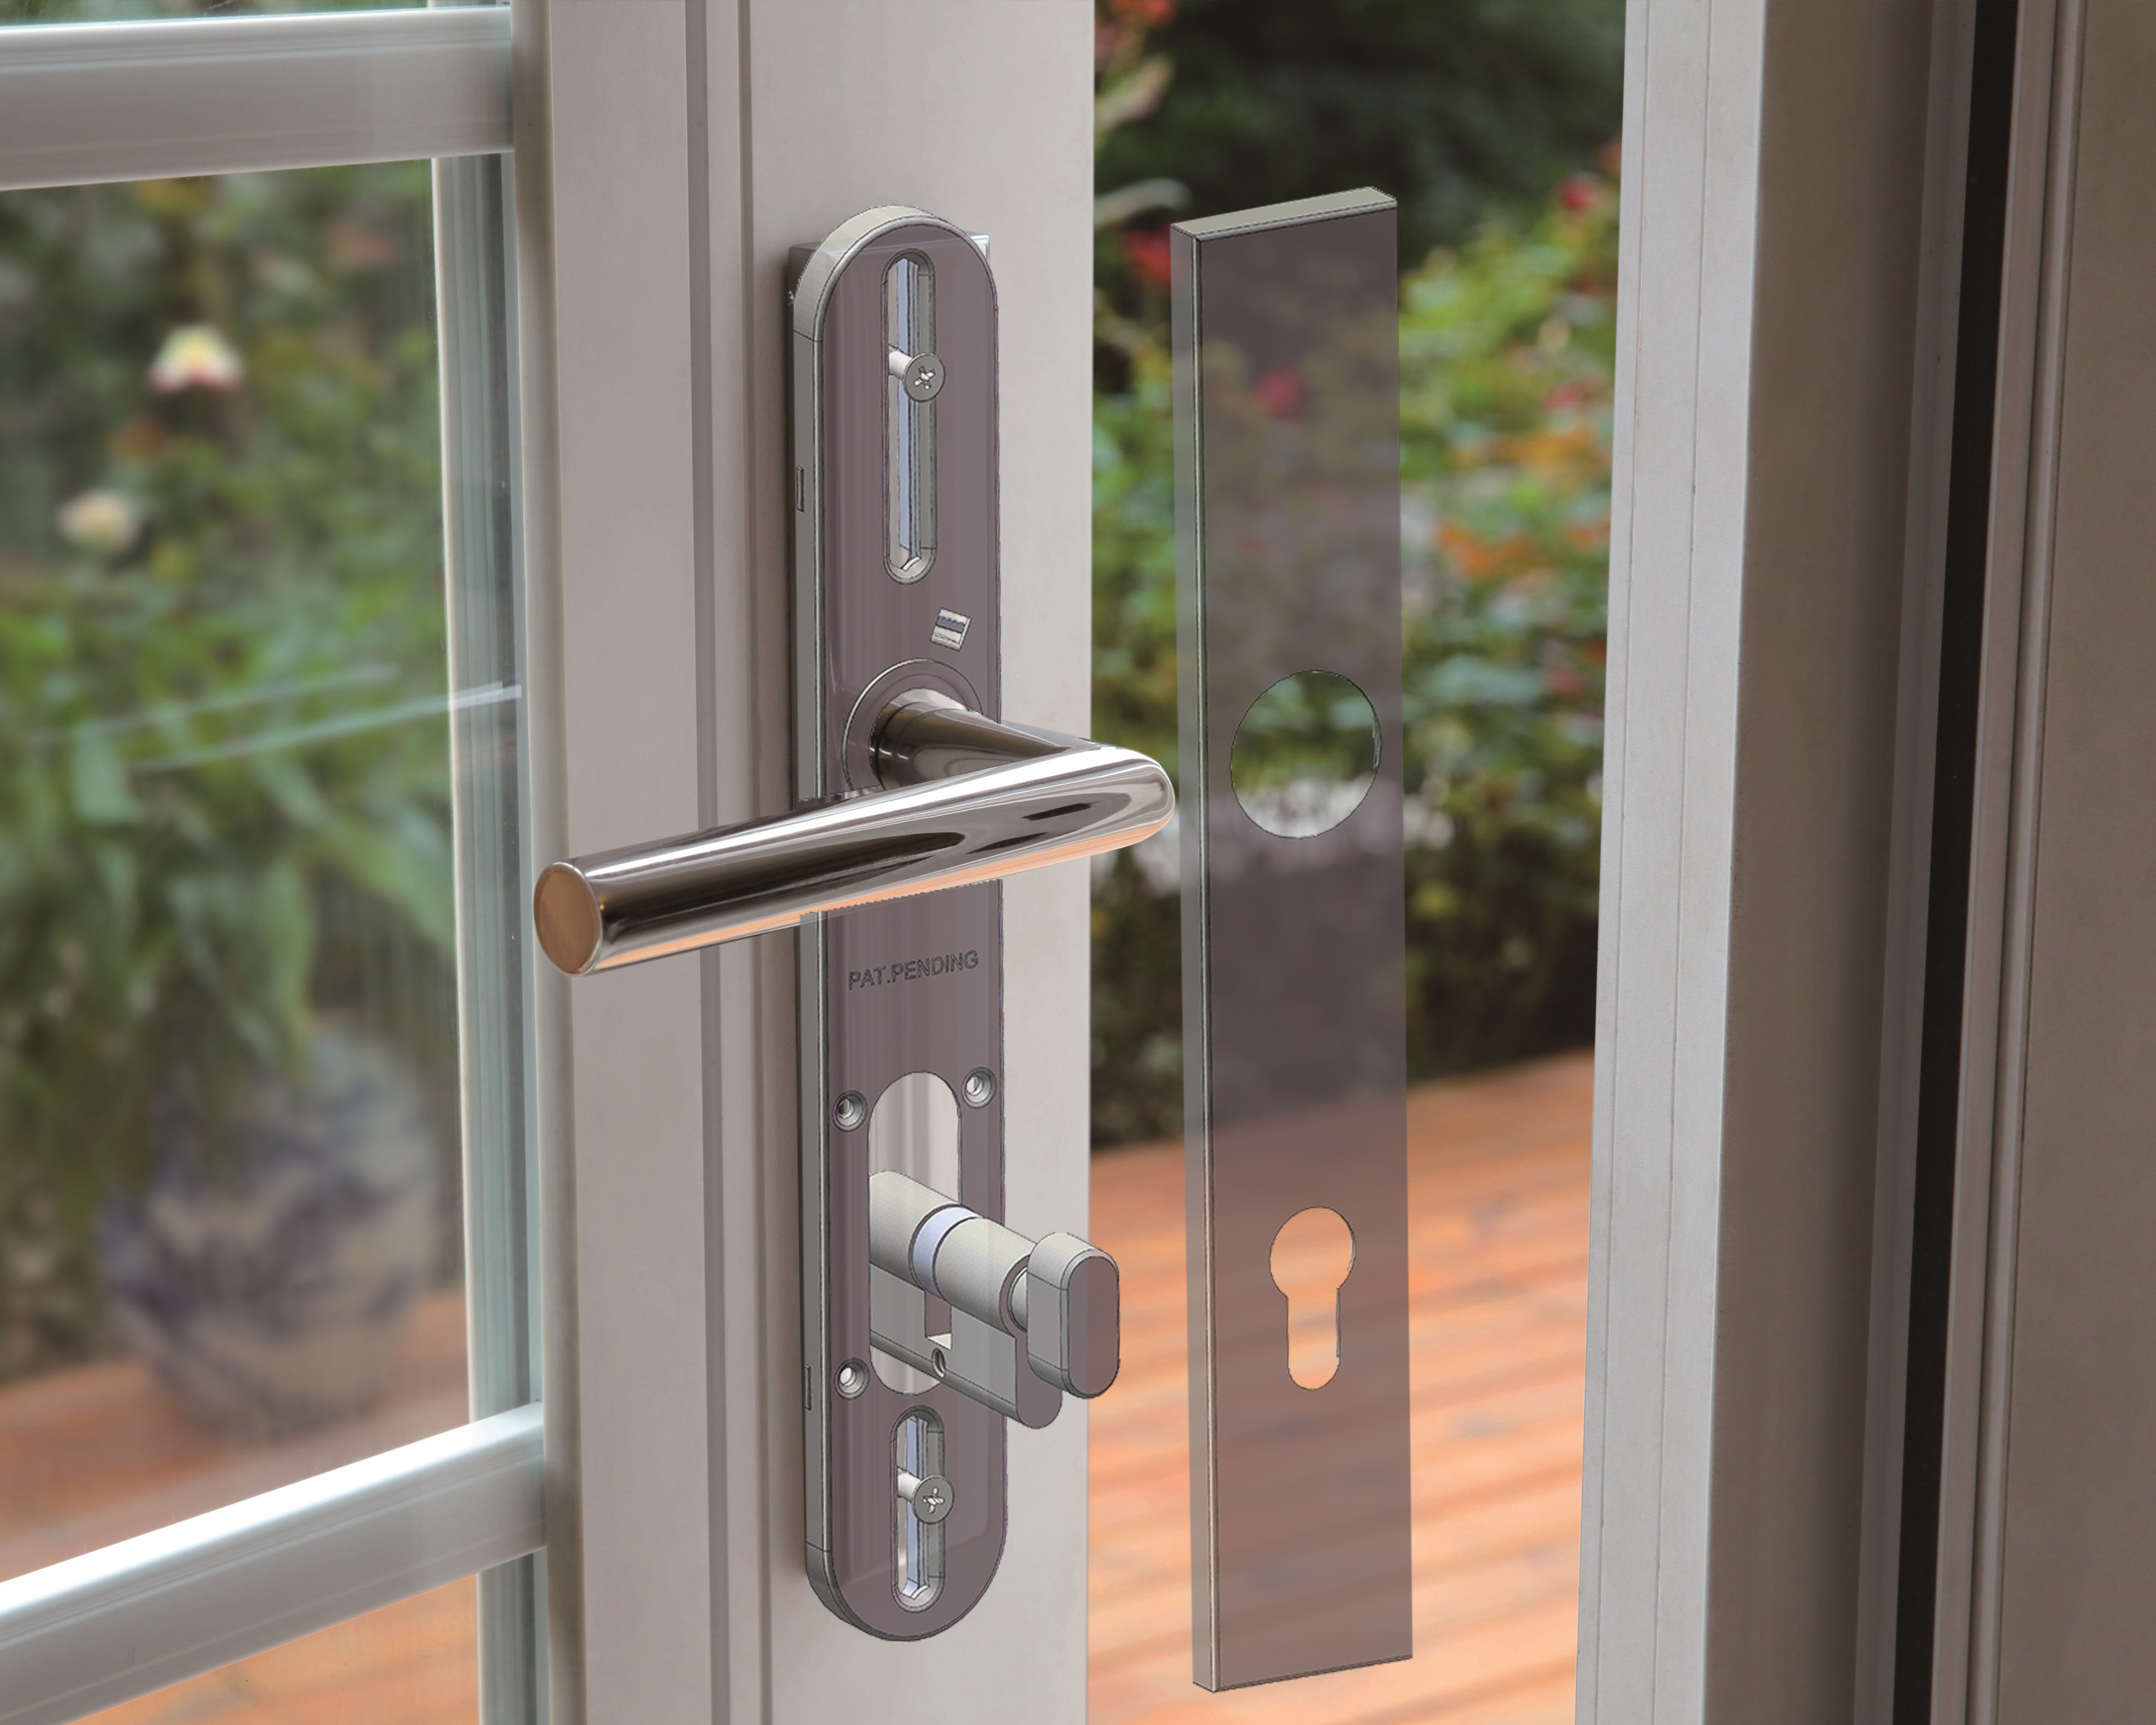 Inox Privacy Barn Door Lock To Make Its Kbis Debut In Orlando